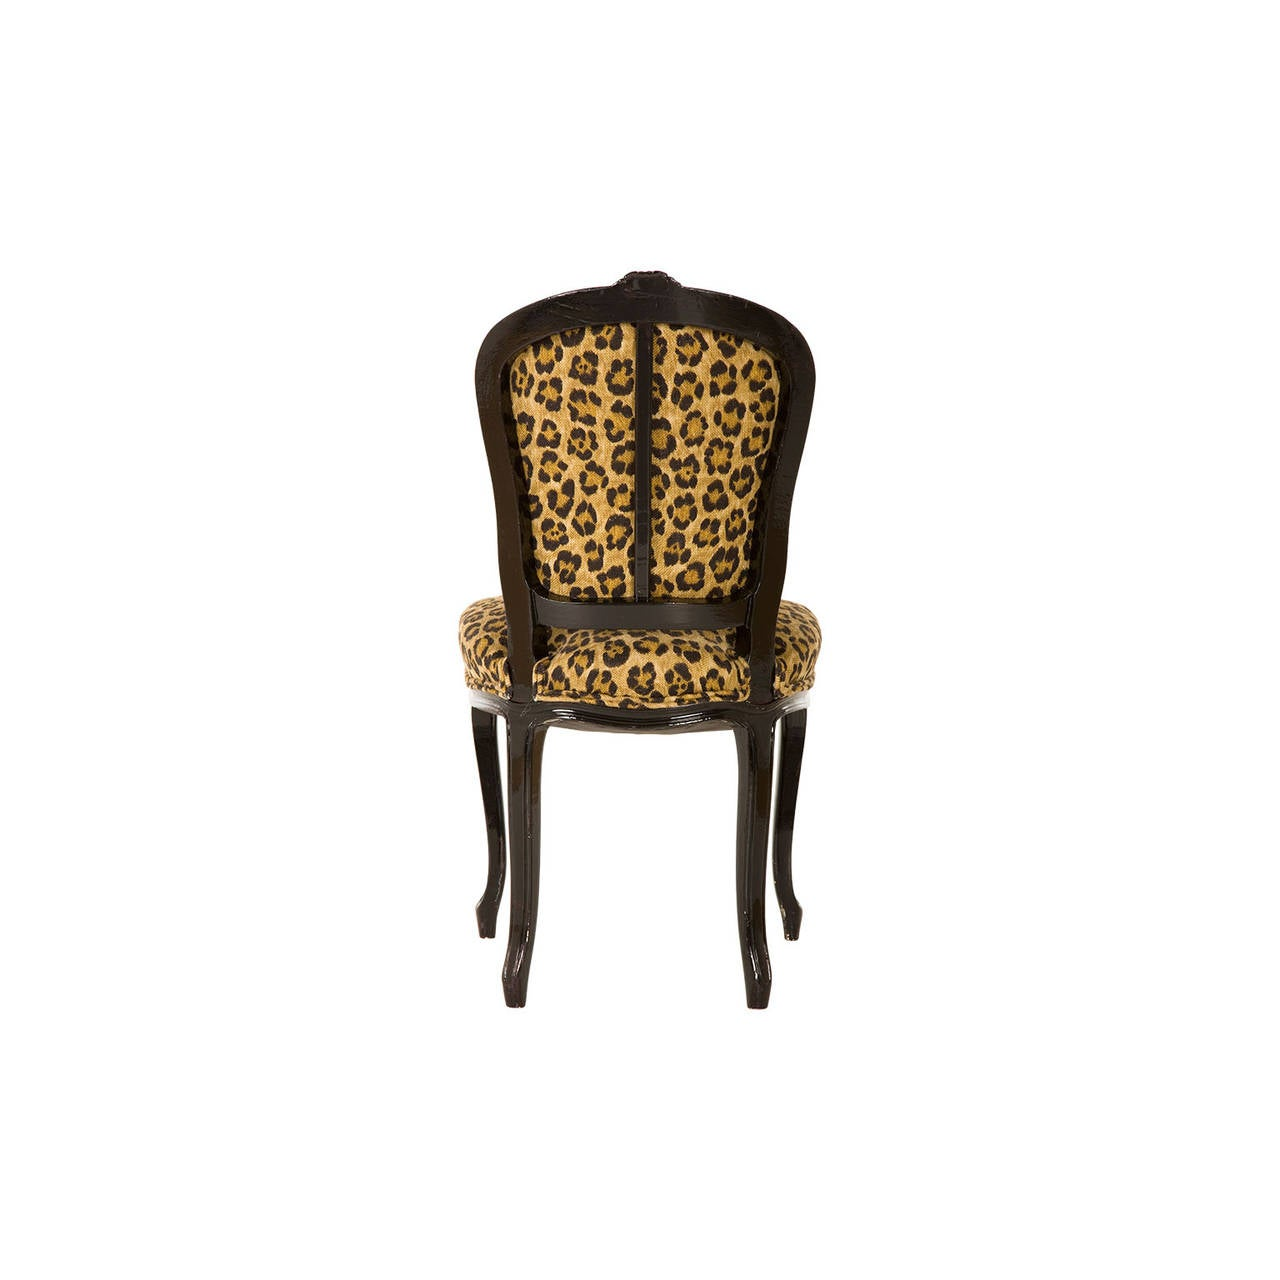 cheetah print folding chair steel casters vintage leopard cafe at 1stdibs